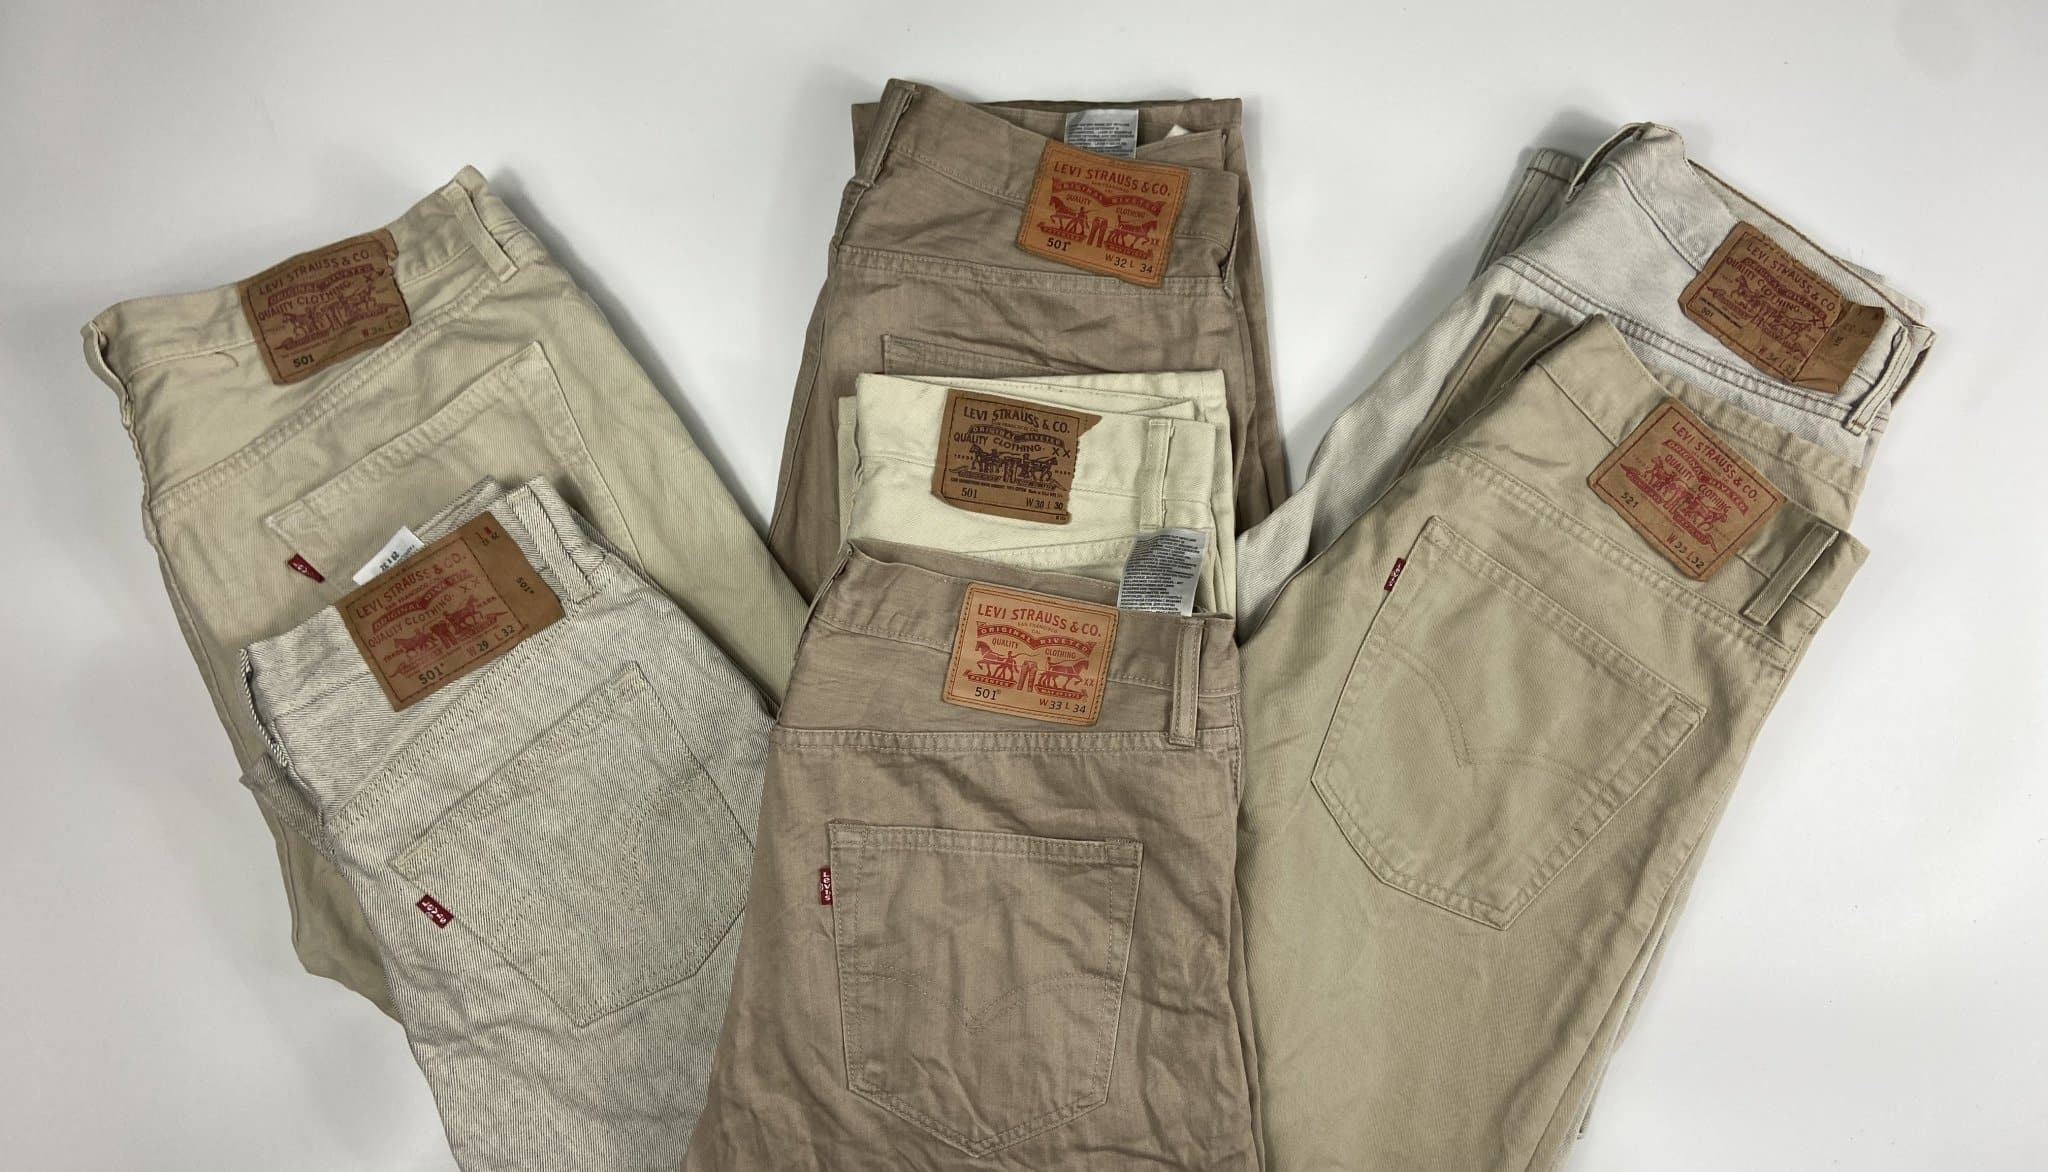 Vintage Levi's Classic Beige/Cream 501 Jeans W29 L32 (BE1) - Discounted Deals UK